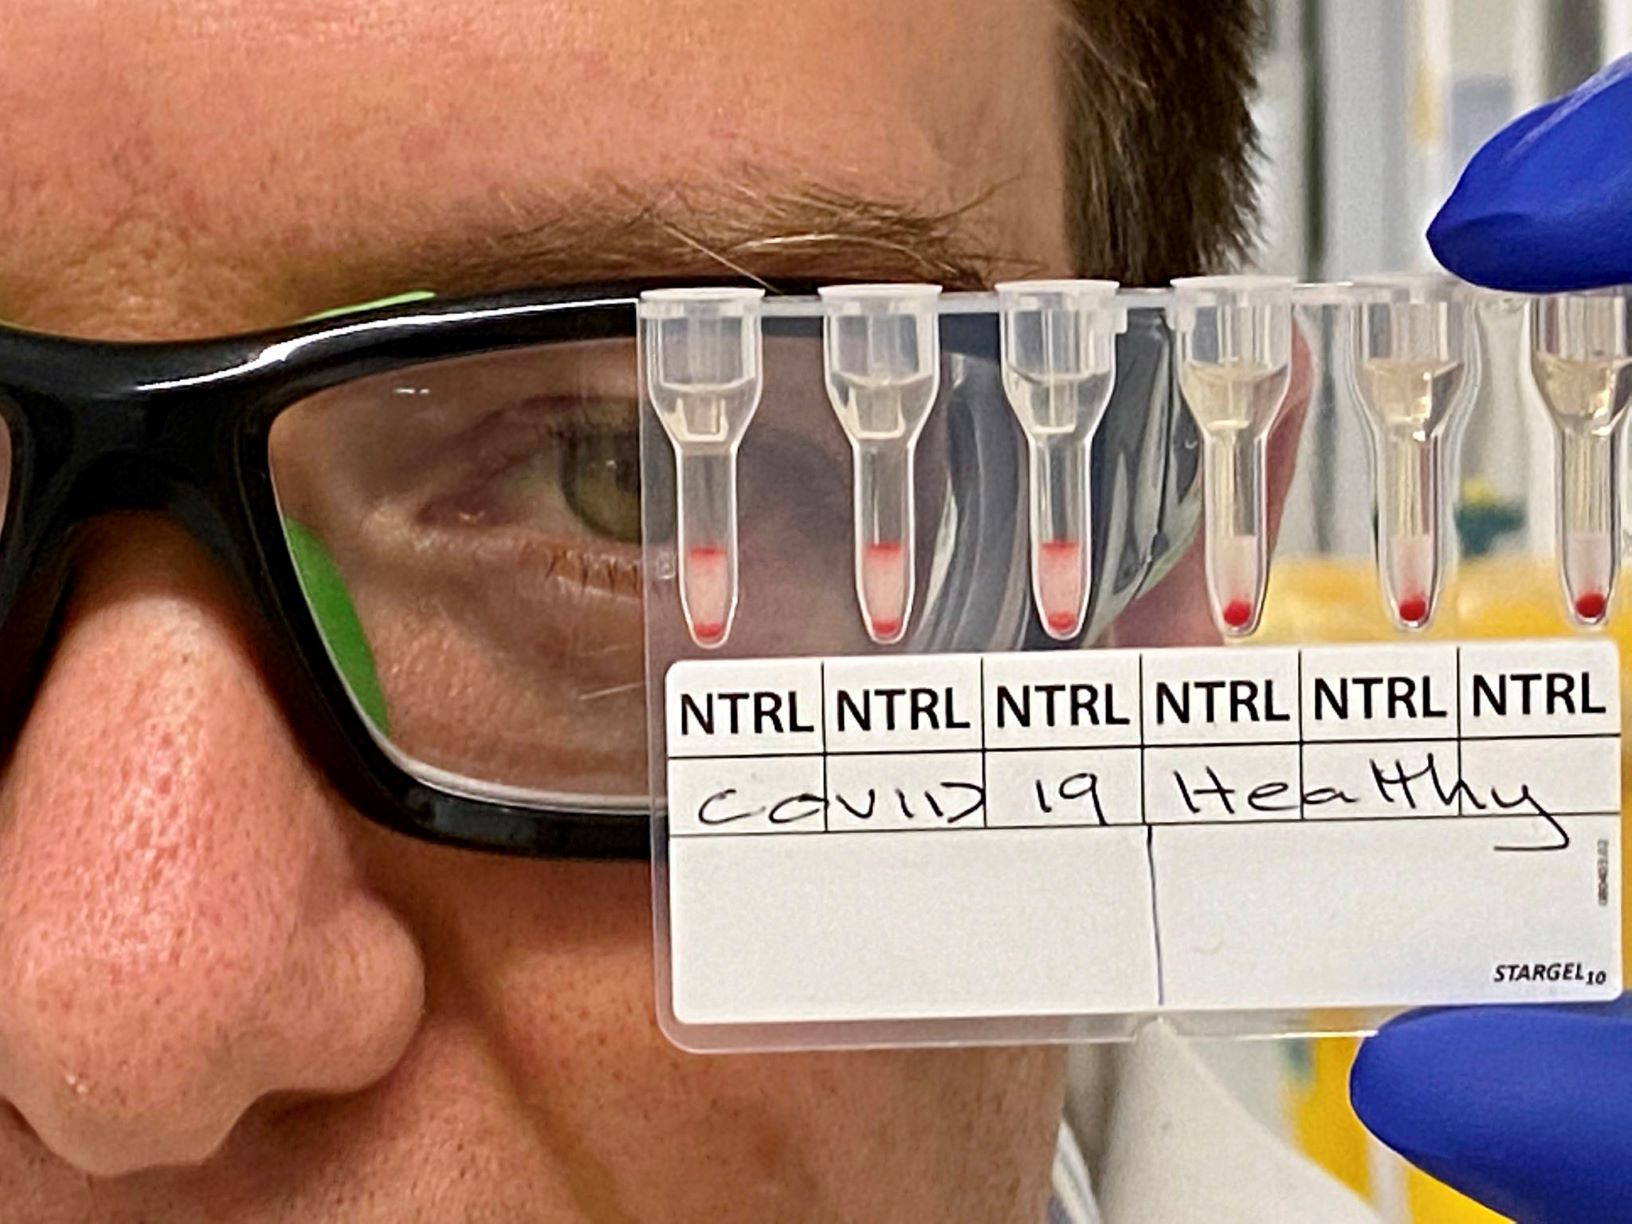 MedTech News - Breakthrough blood test detects positive COVID-19 results in 20 minutes